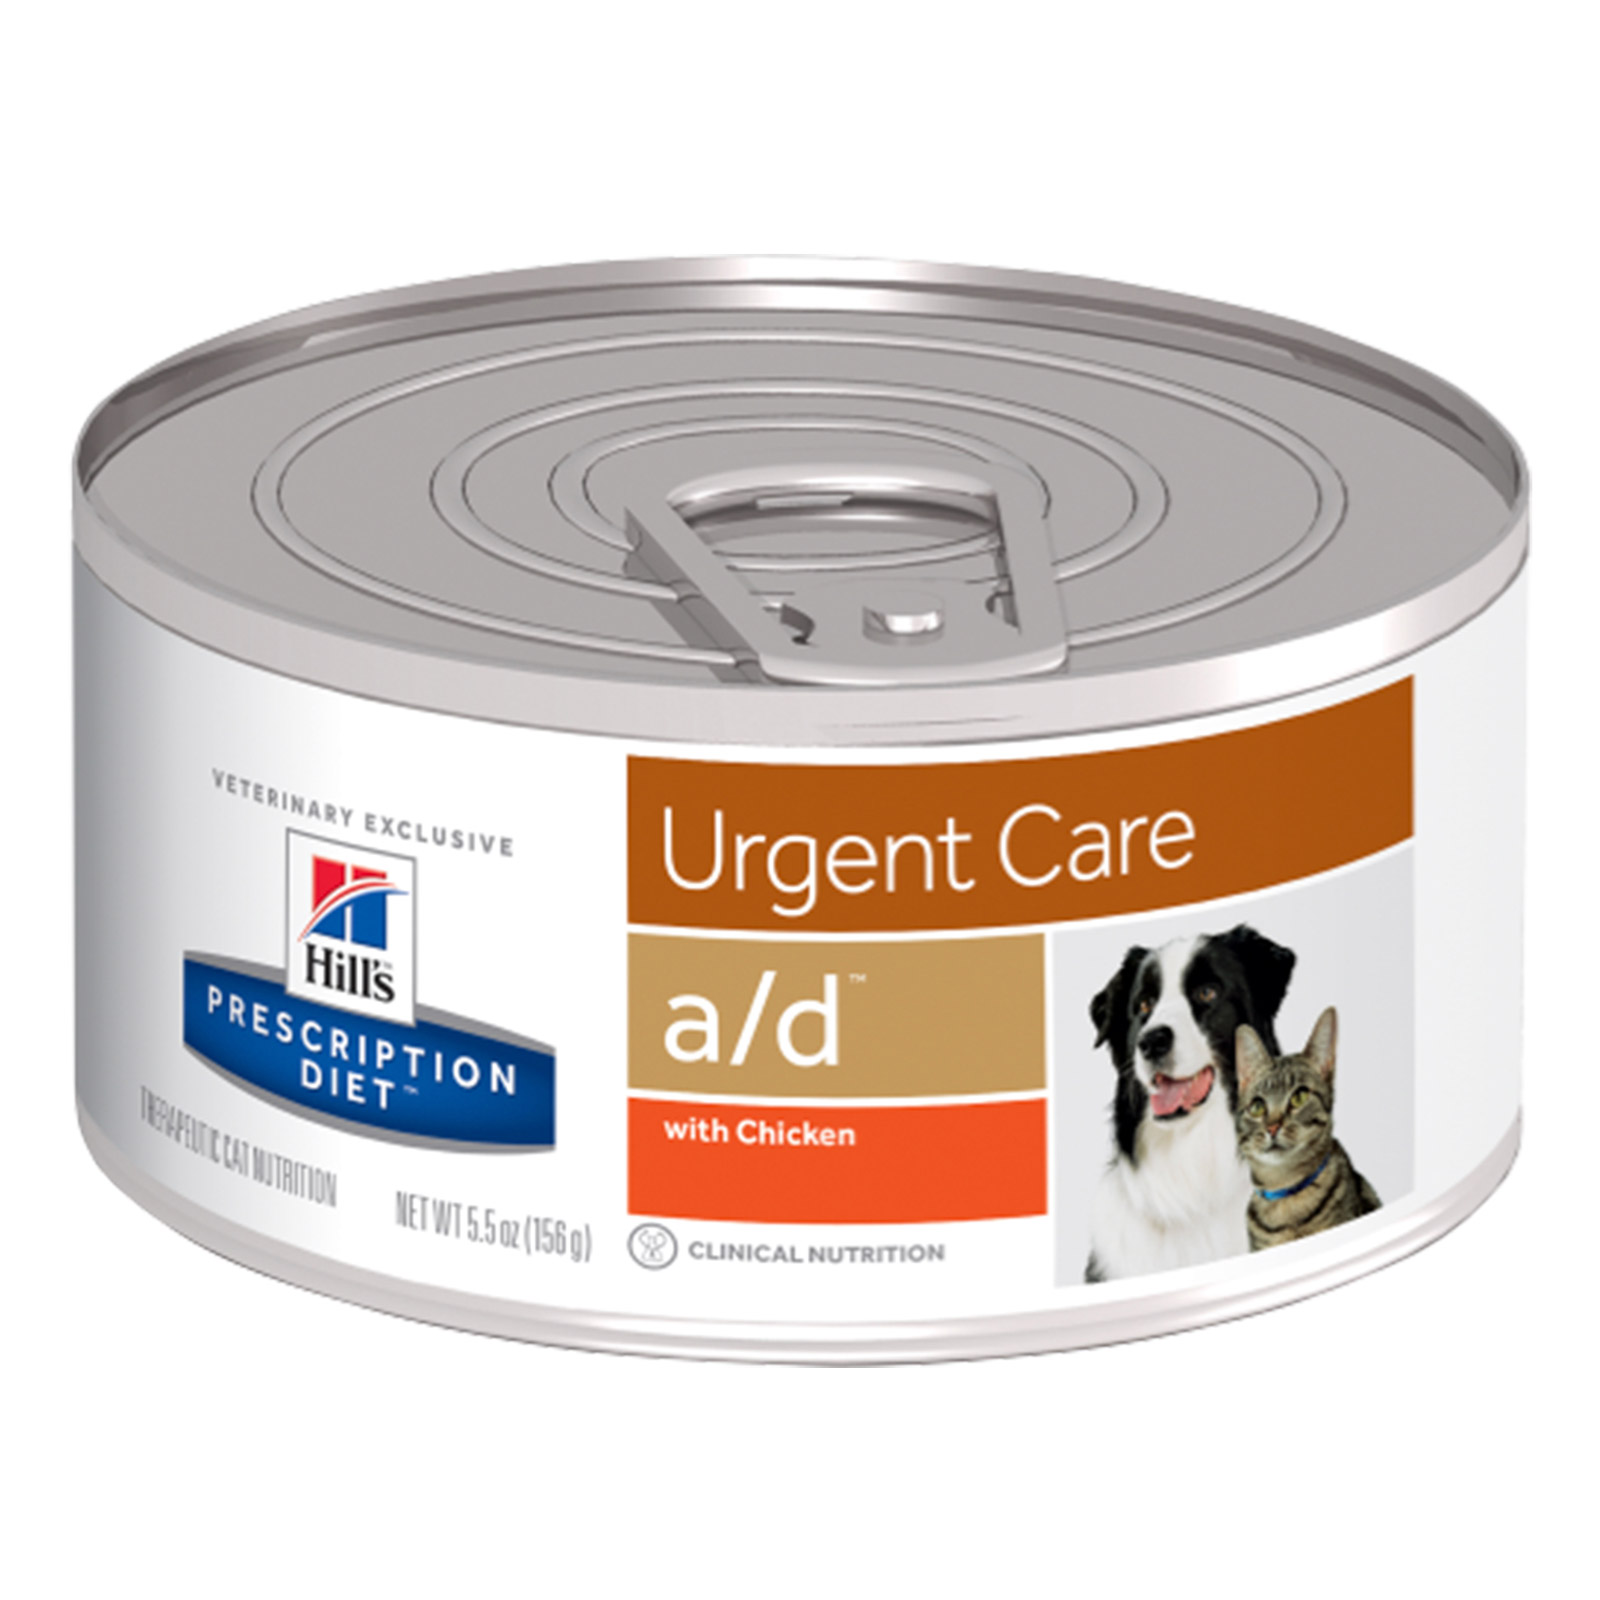 Hill's Prescription Diet a/d Urgent Care Feline Canned Dog Food